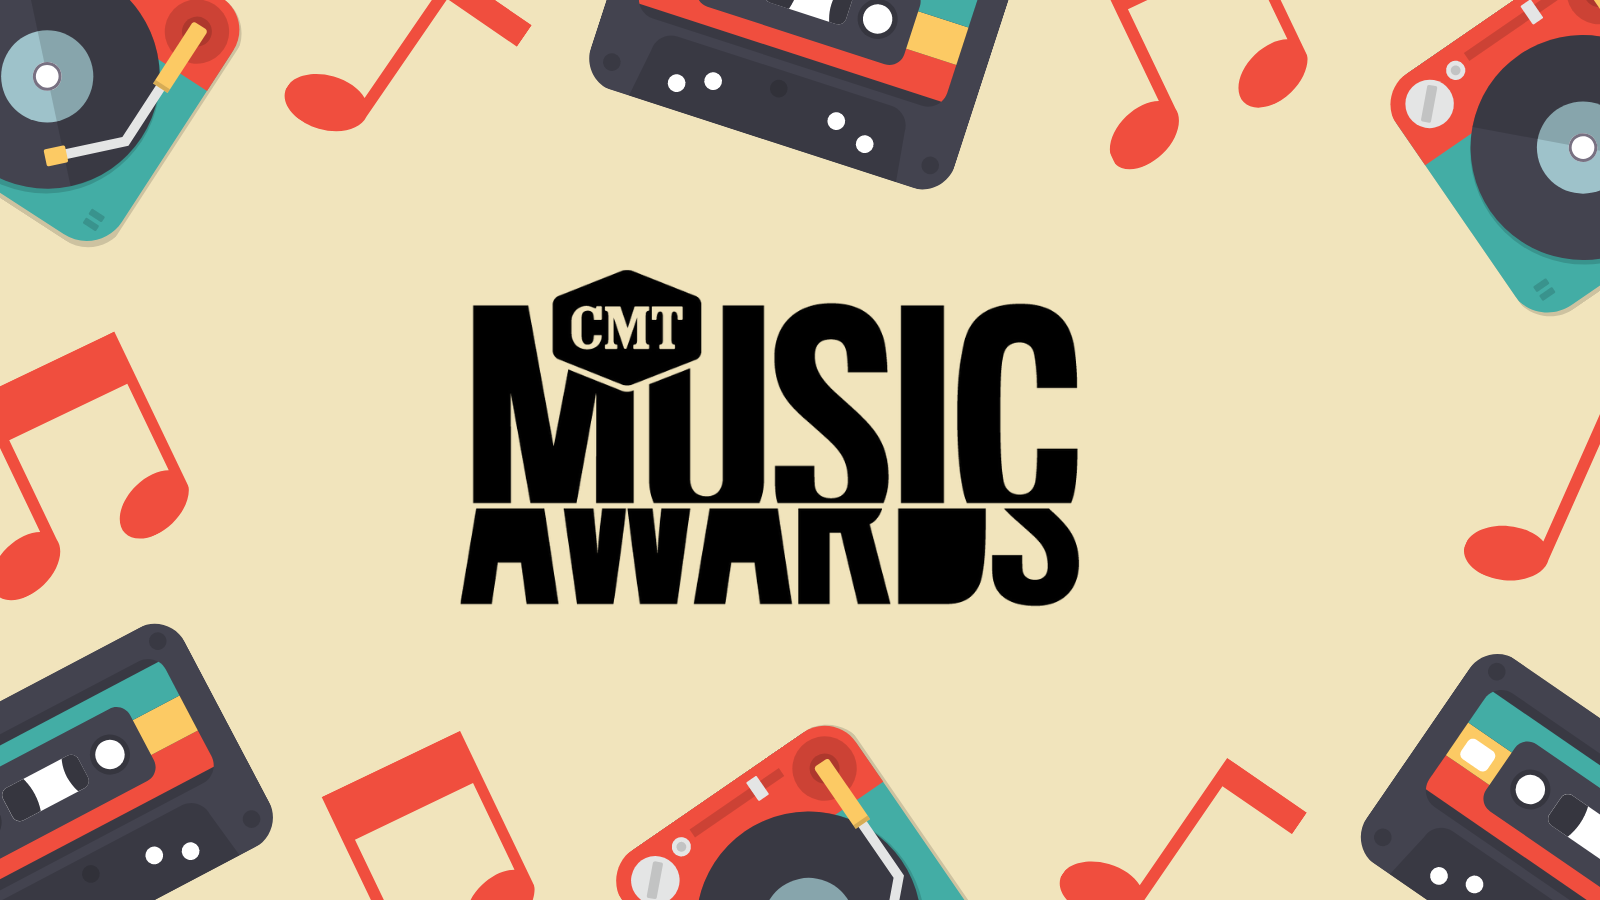 How To Watch Cmt Music Awards 2019 Online Without Cable